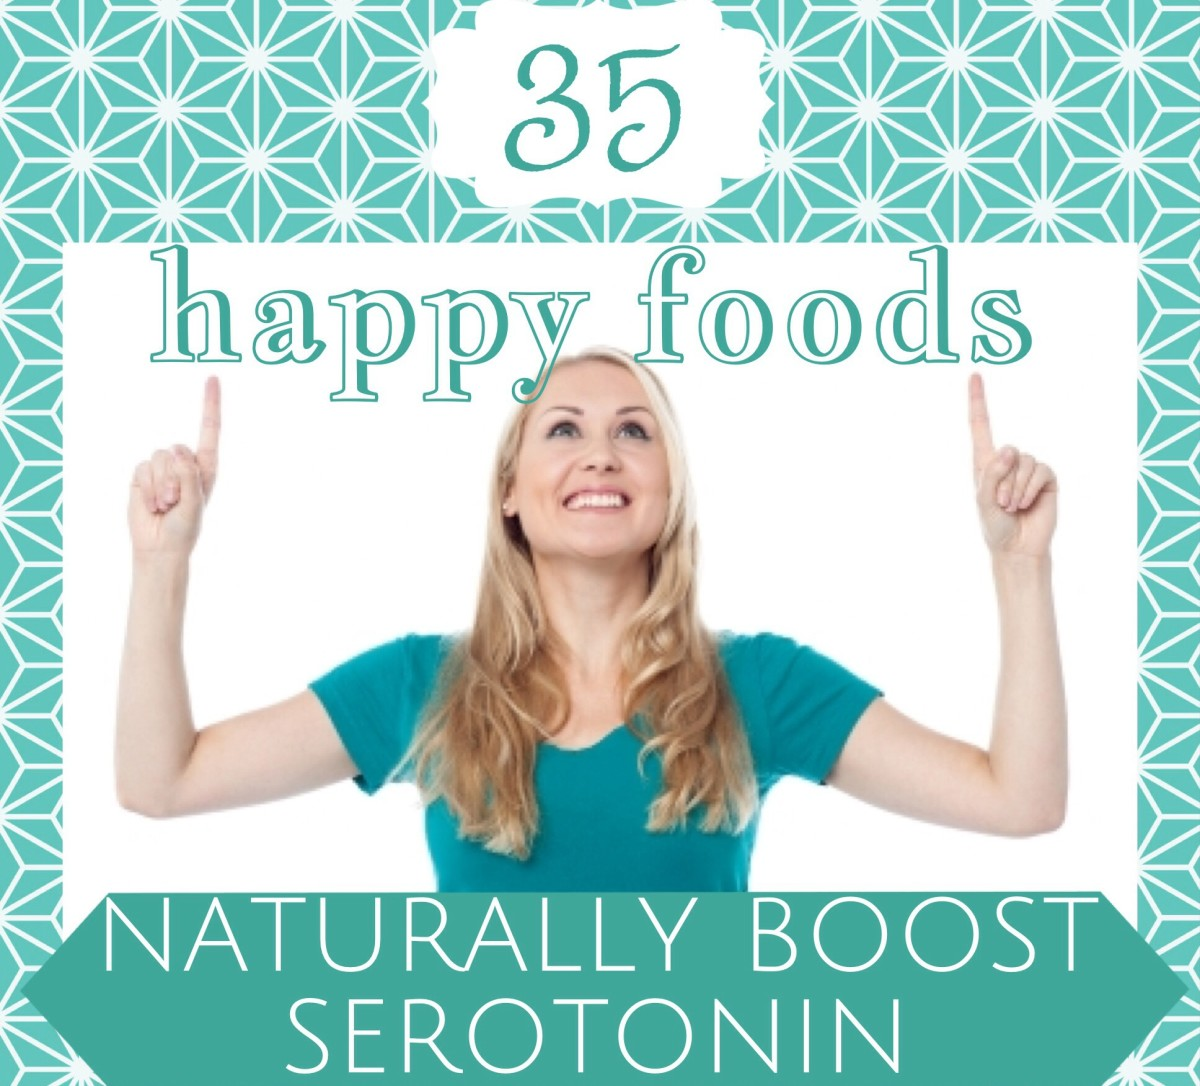 Serotonin Deficiency: How to Increase Serotonin Levels with Foods